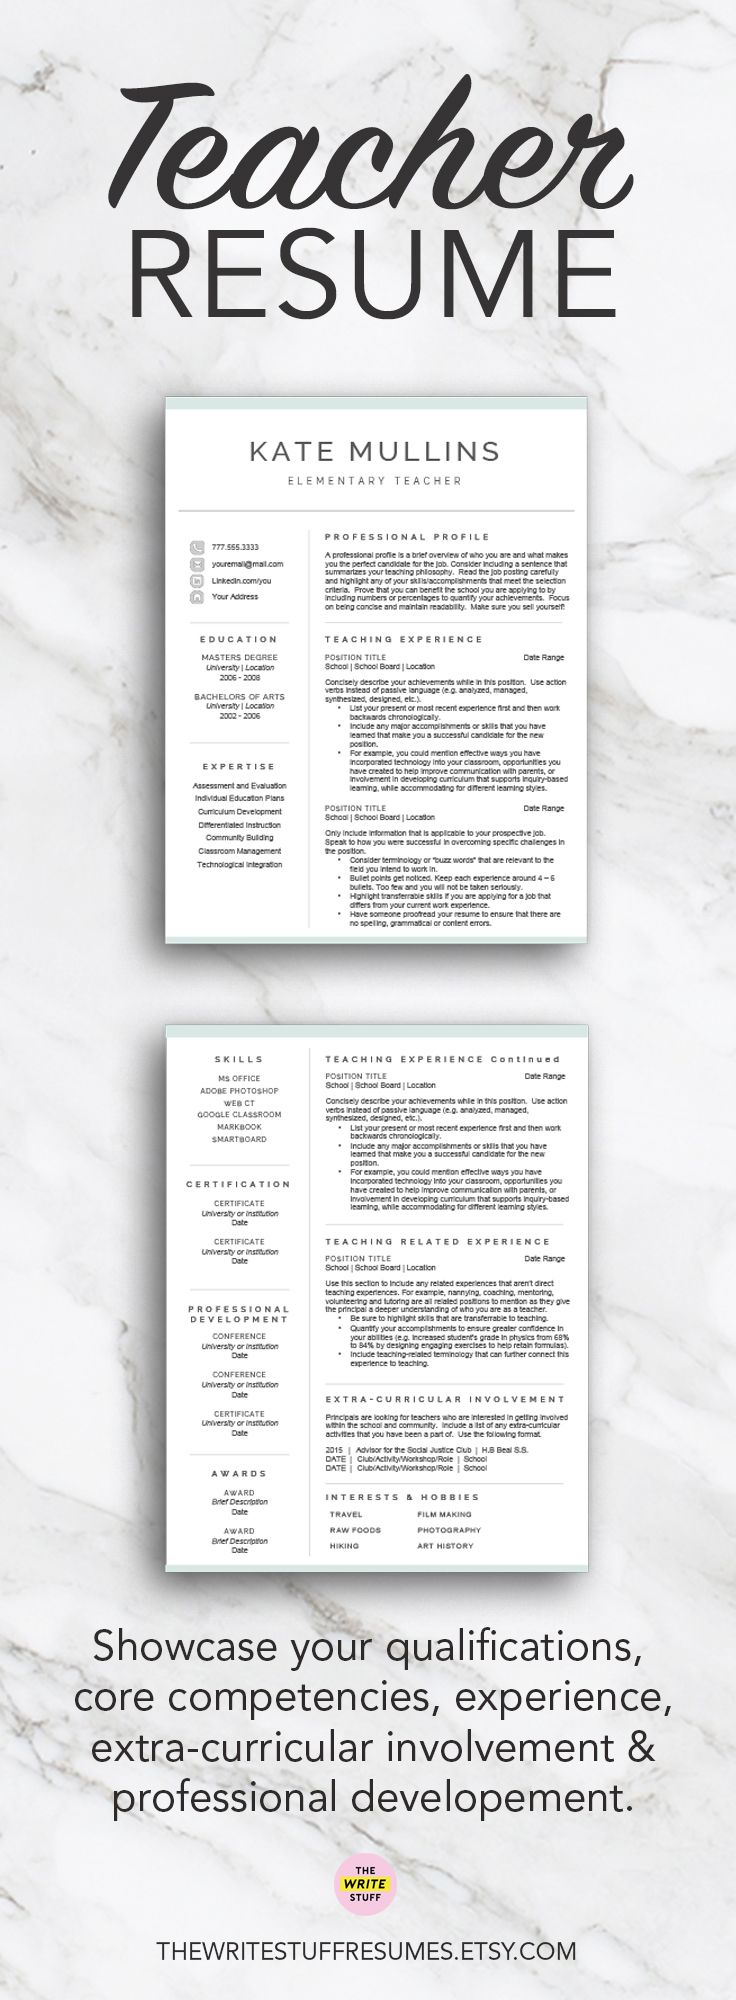 best 25 teacher resumes ideas on pinterest teaching resume teacher resume template and substitute teacher jobs - Resume Templates For Educators